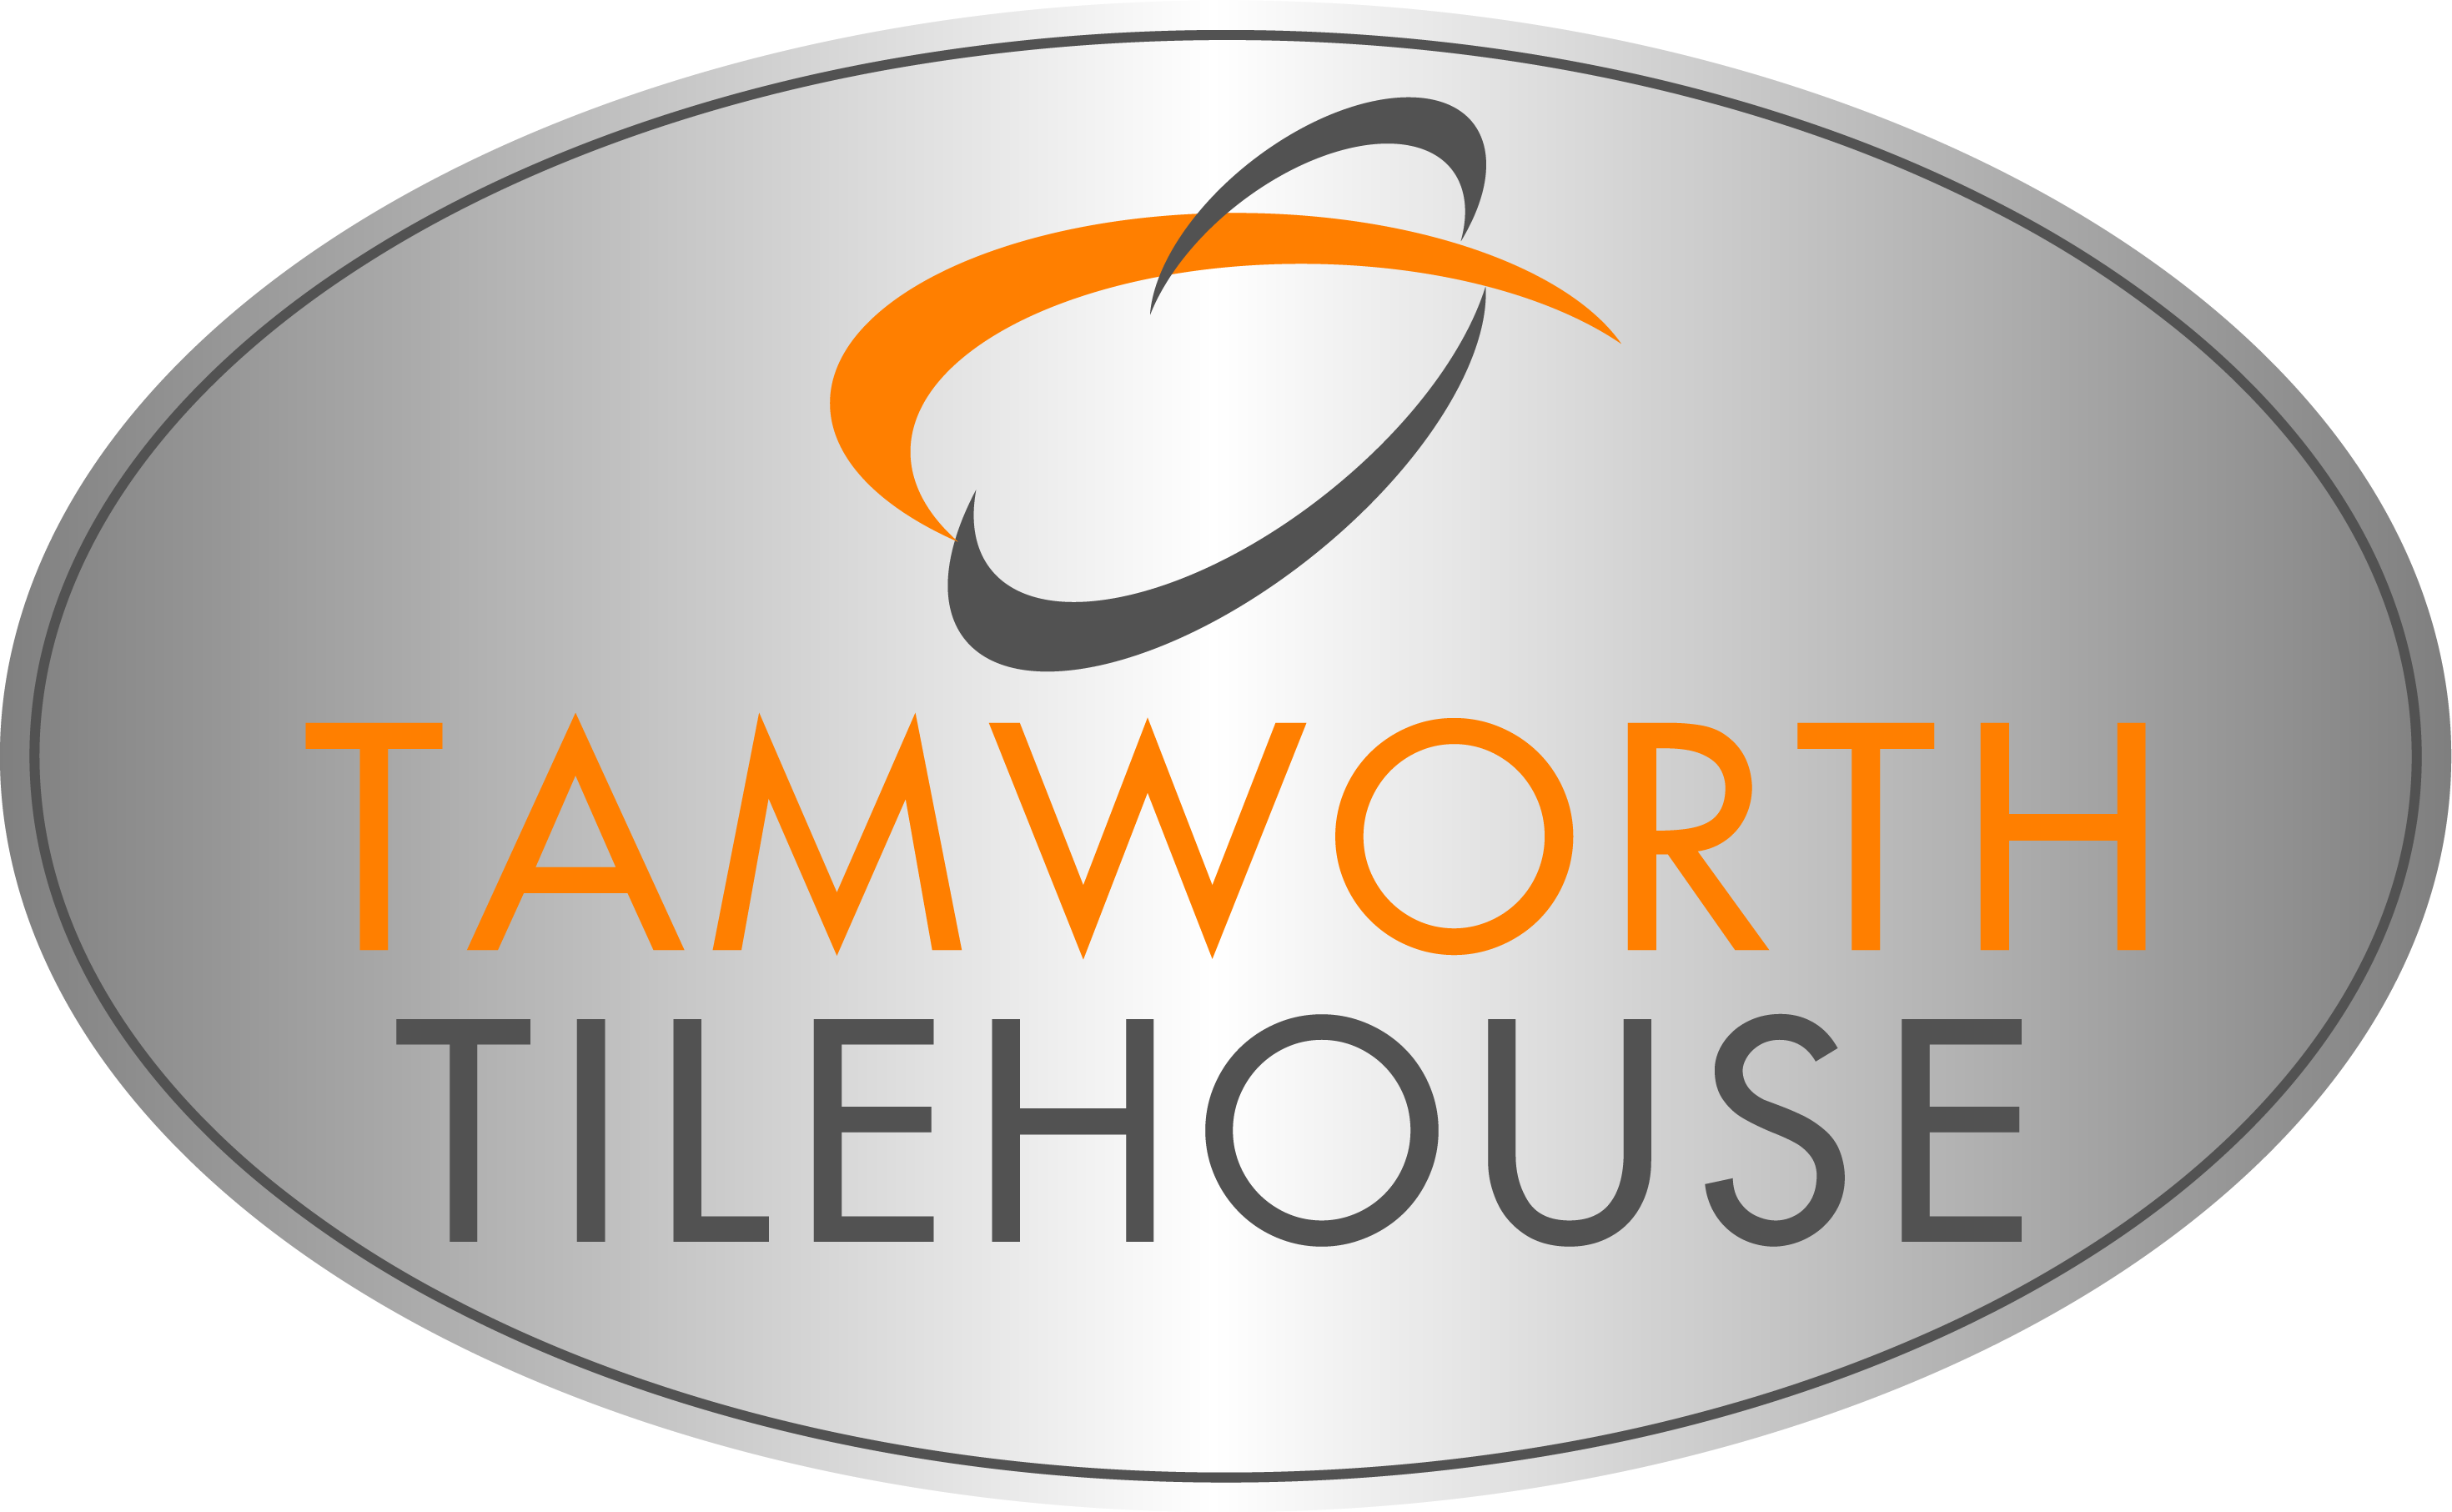 Tamworth Tilehouse Logo